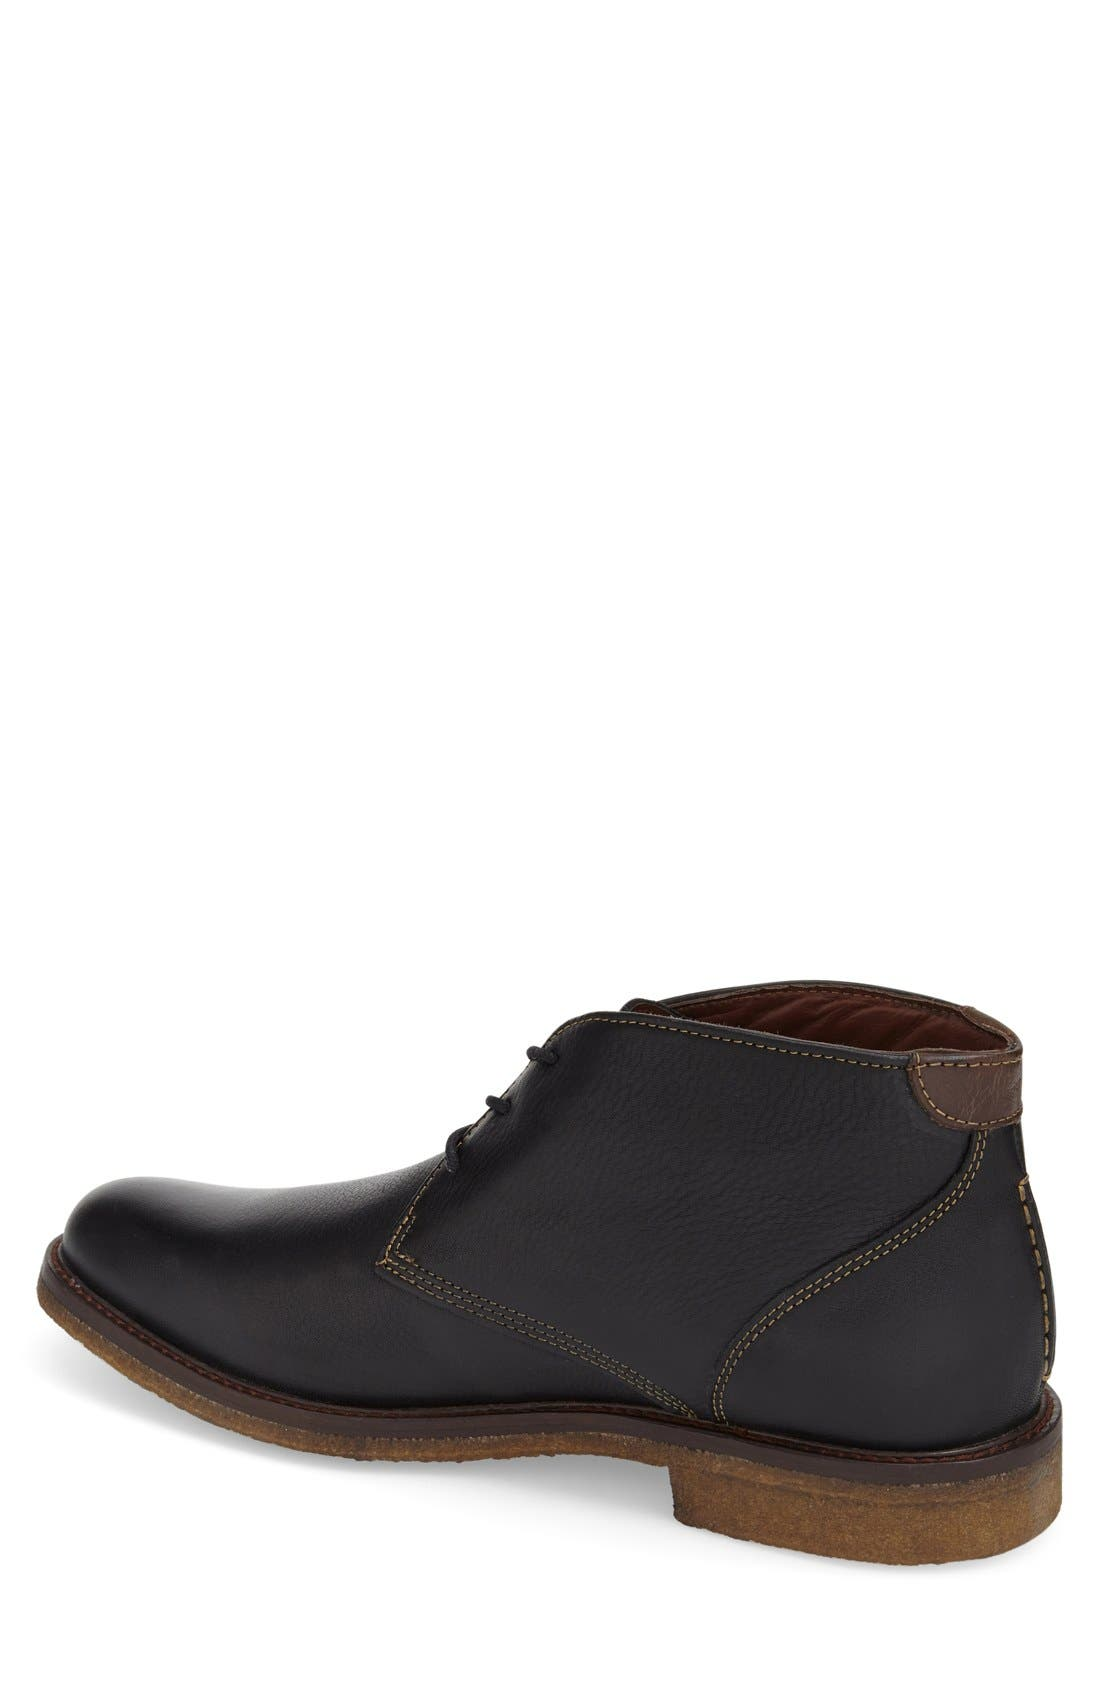 JOHNSTON & MURPHY, 'Copeland' Suede Chukka Boot, Alternate thumbnail 4, color, BLACK LEATHER